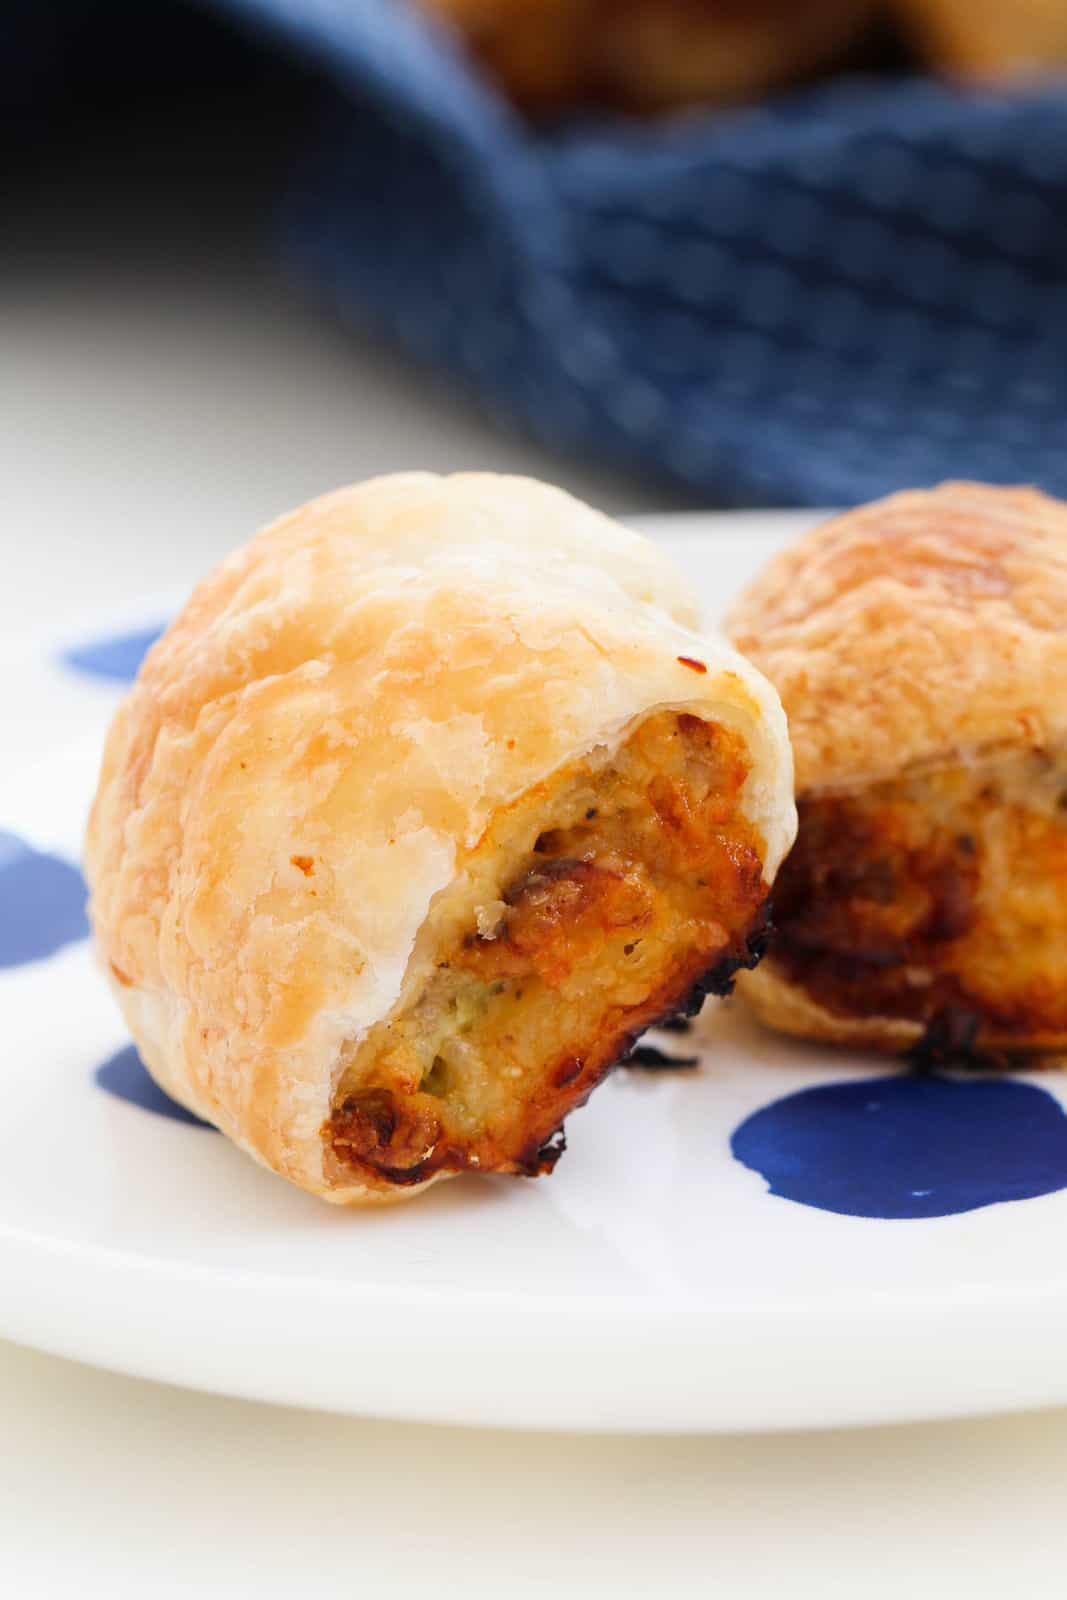 Two golden baked chicken sausage rolls on a blue and white plate.